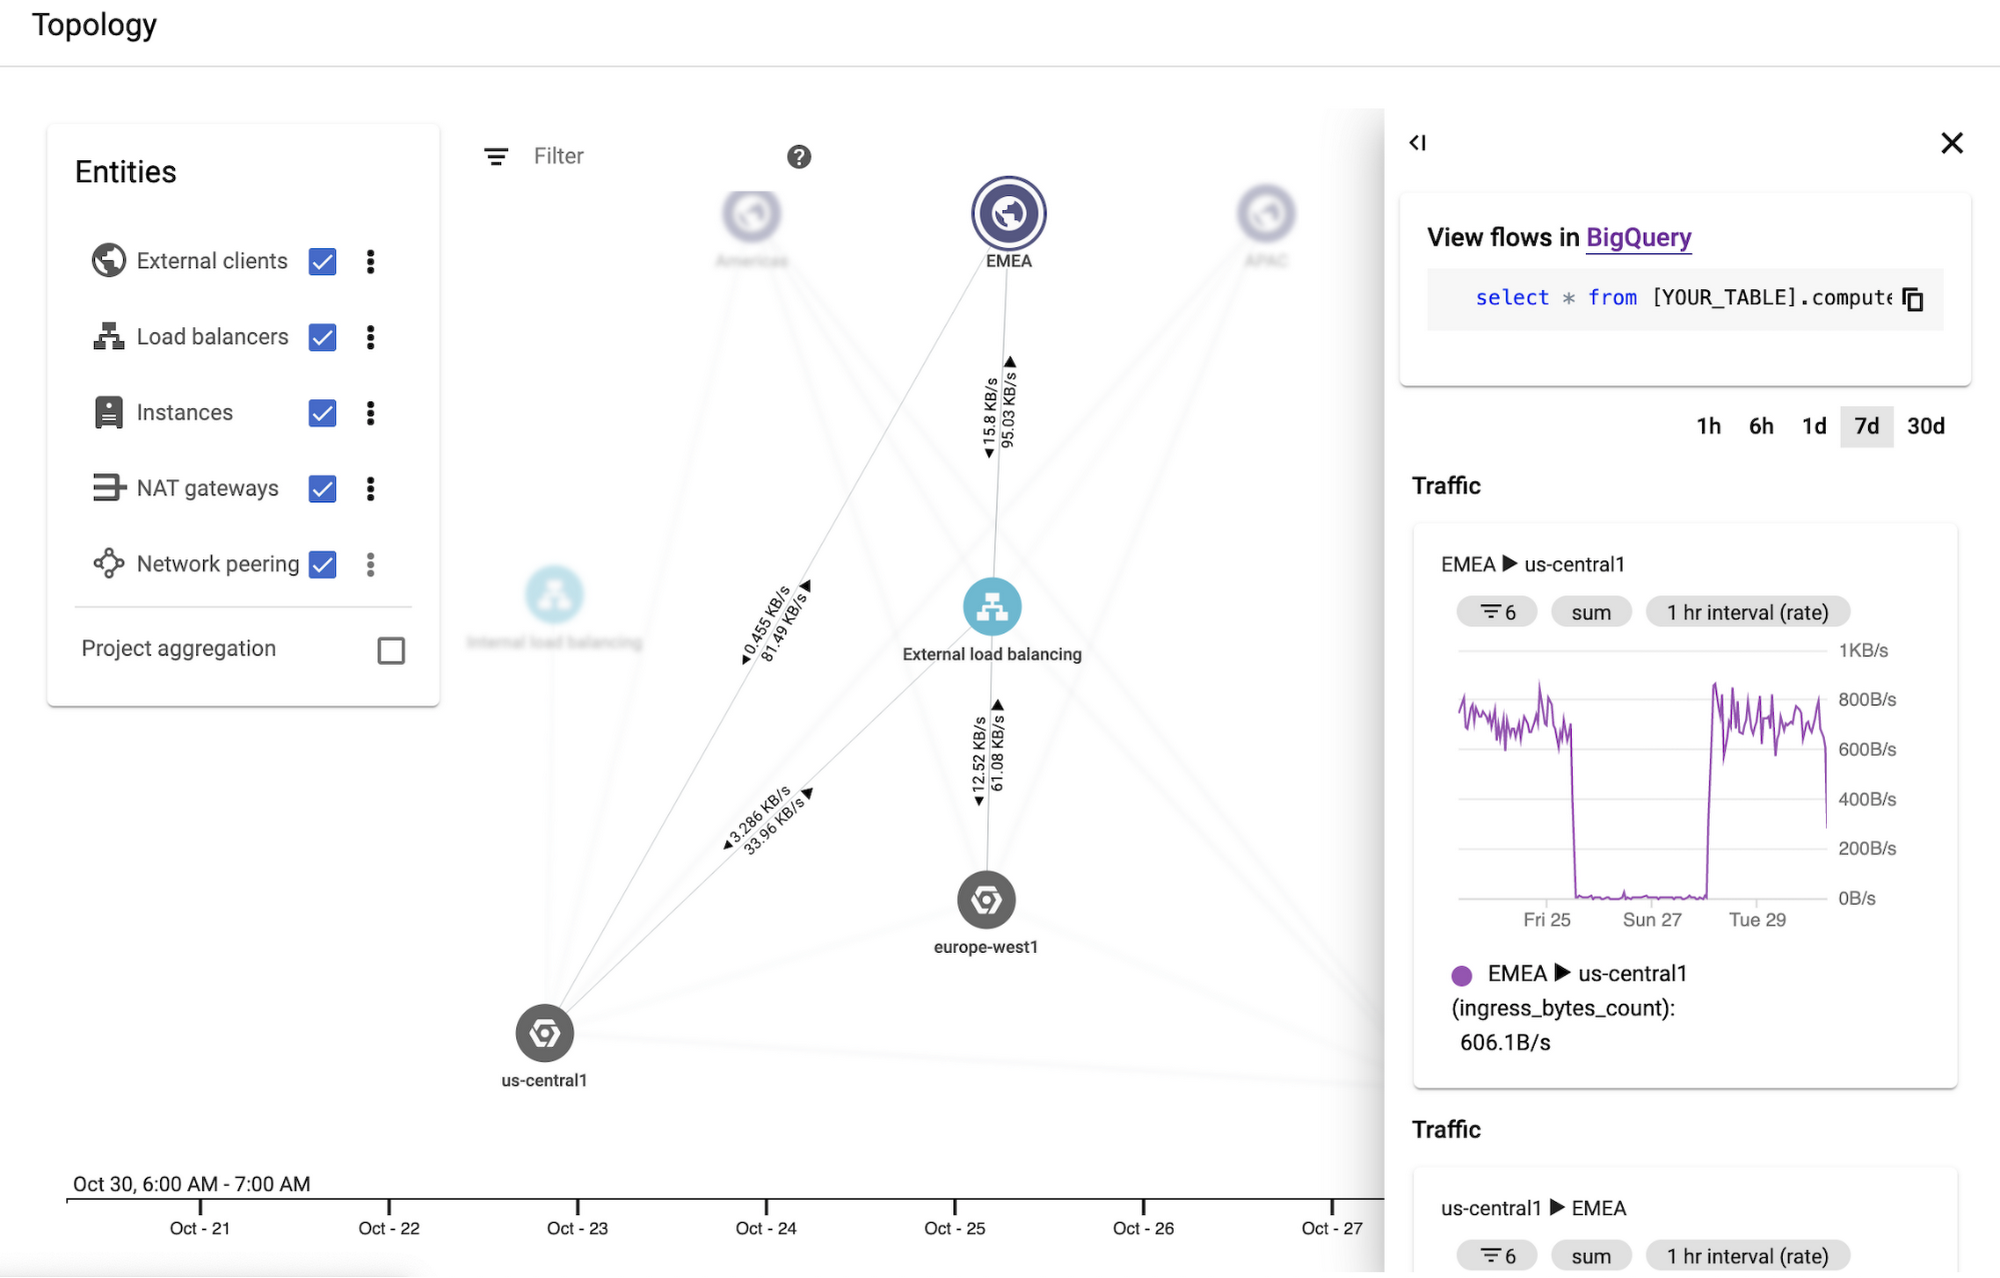 Visualize_your_network_with_insights.max-2000x2000.png